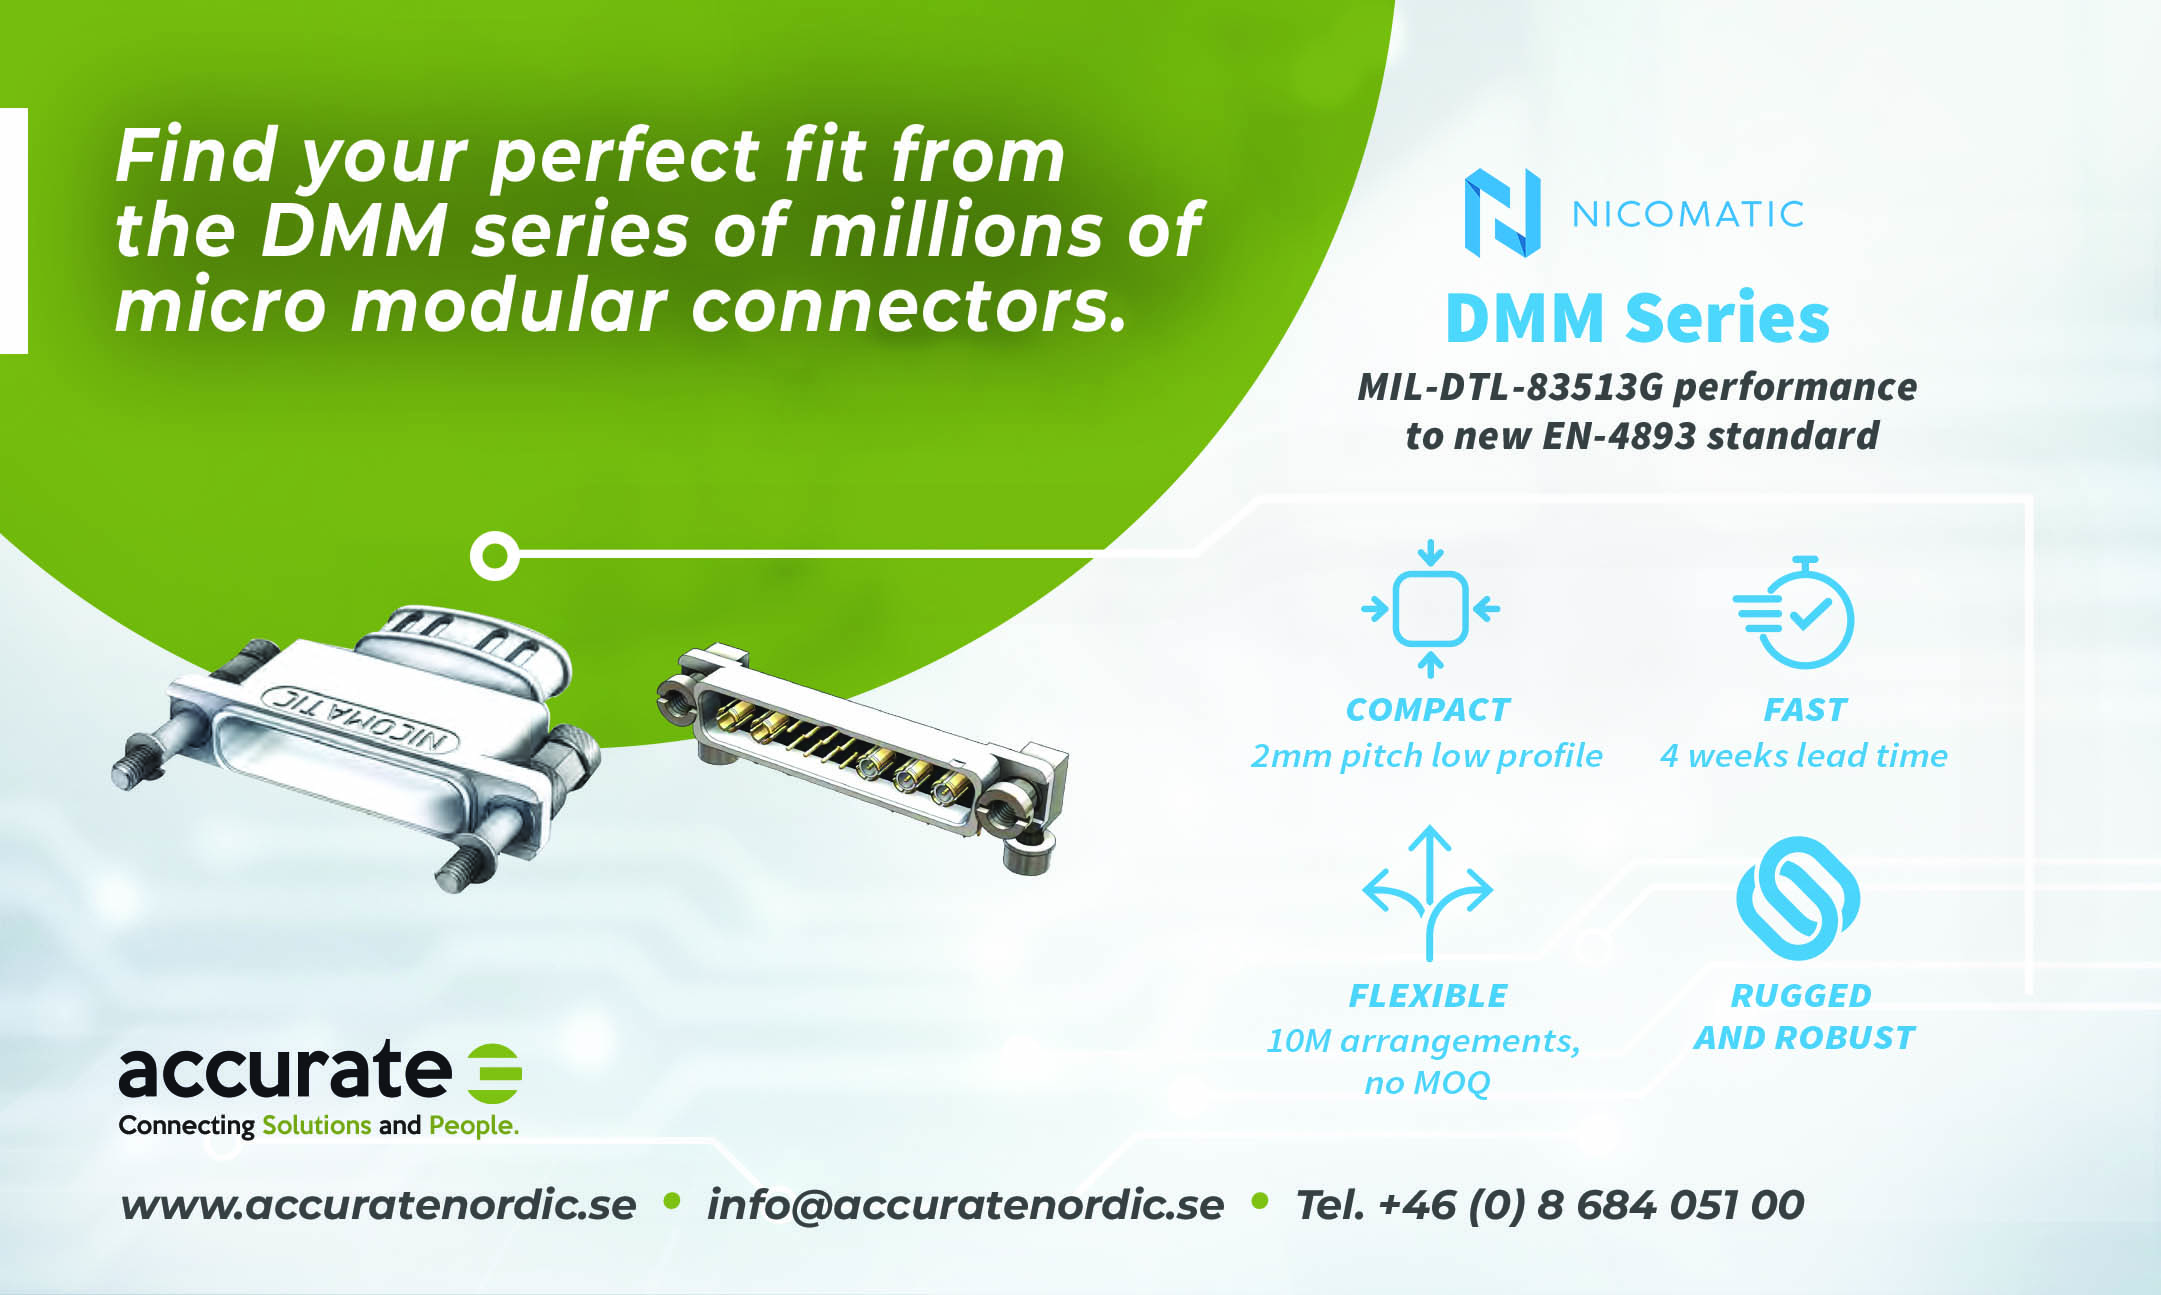 Nicomatic DMM By Accurate Nordic